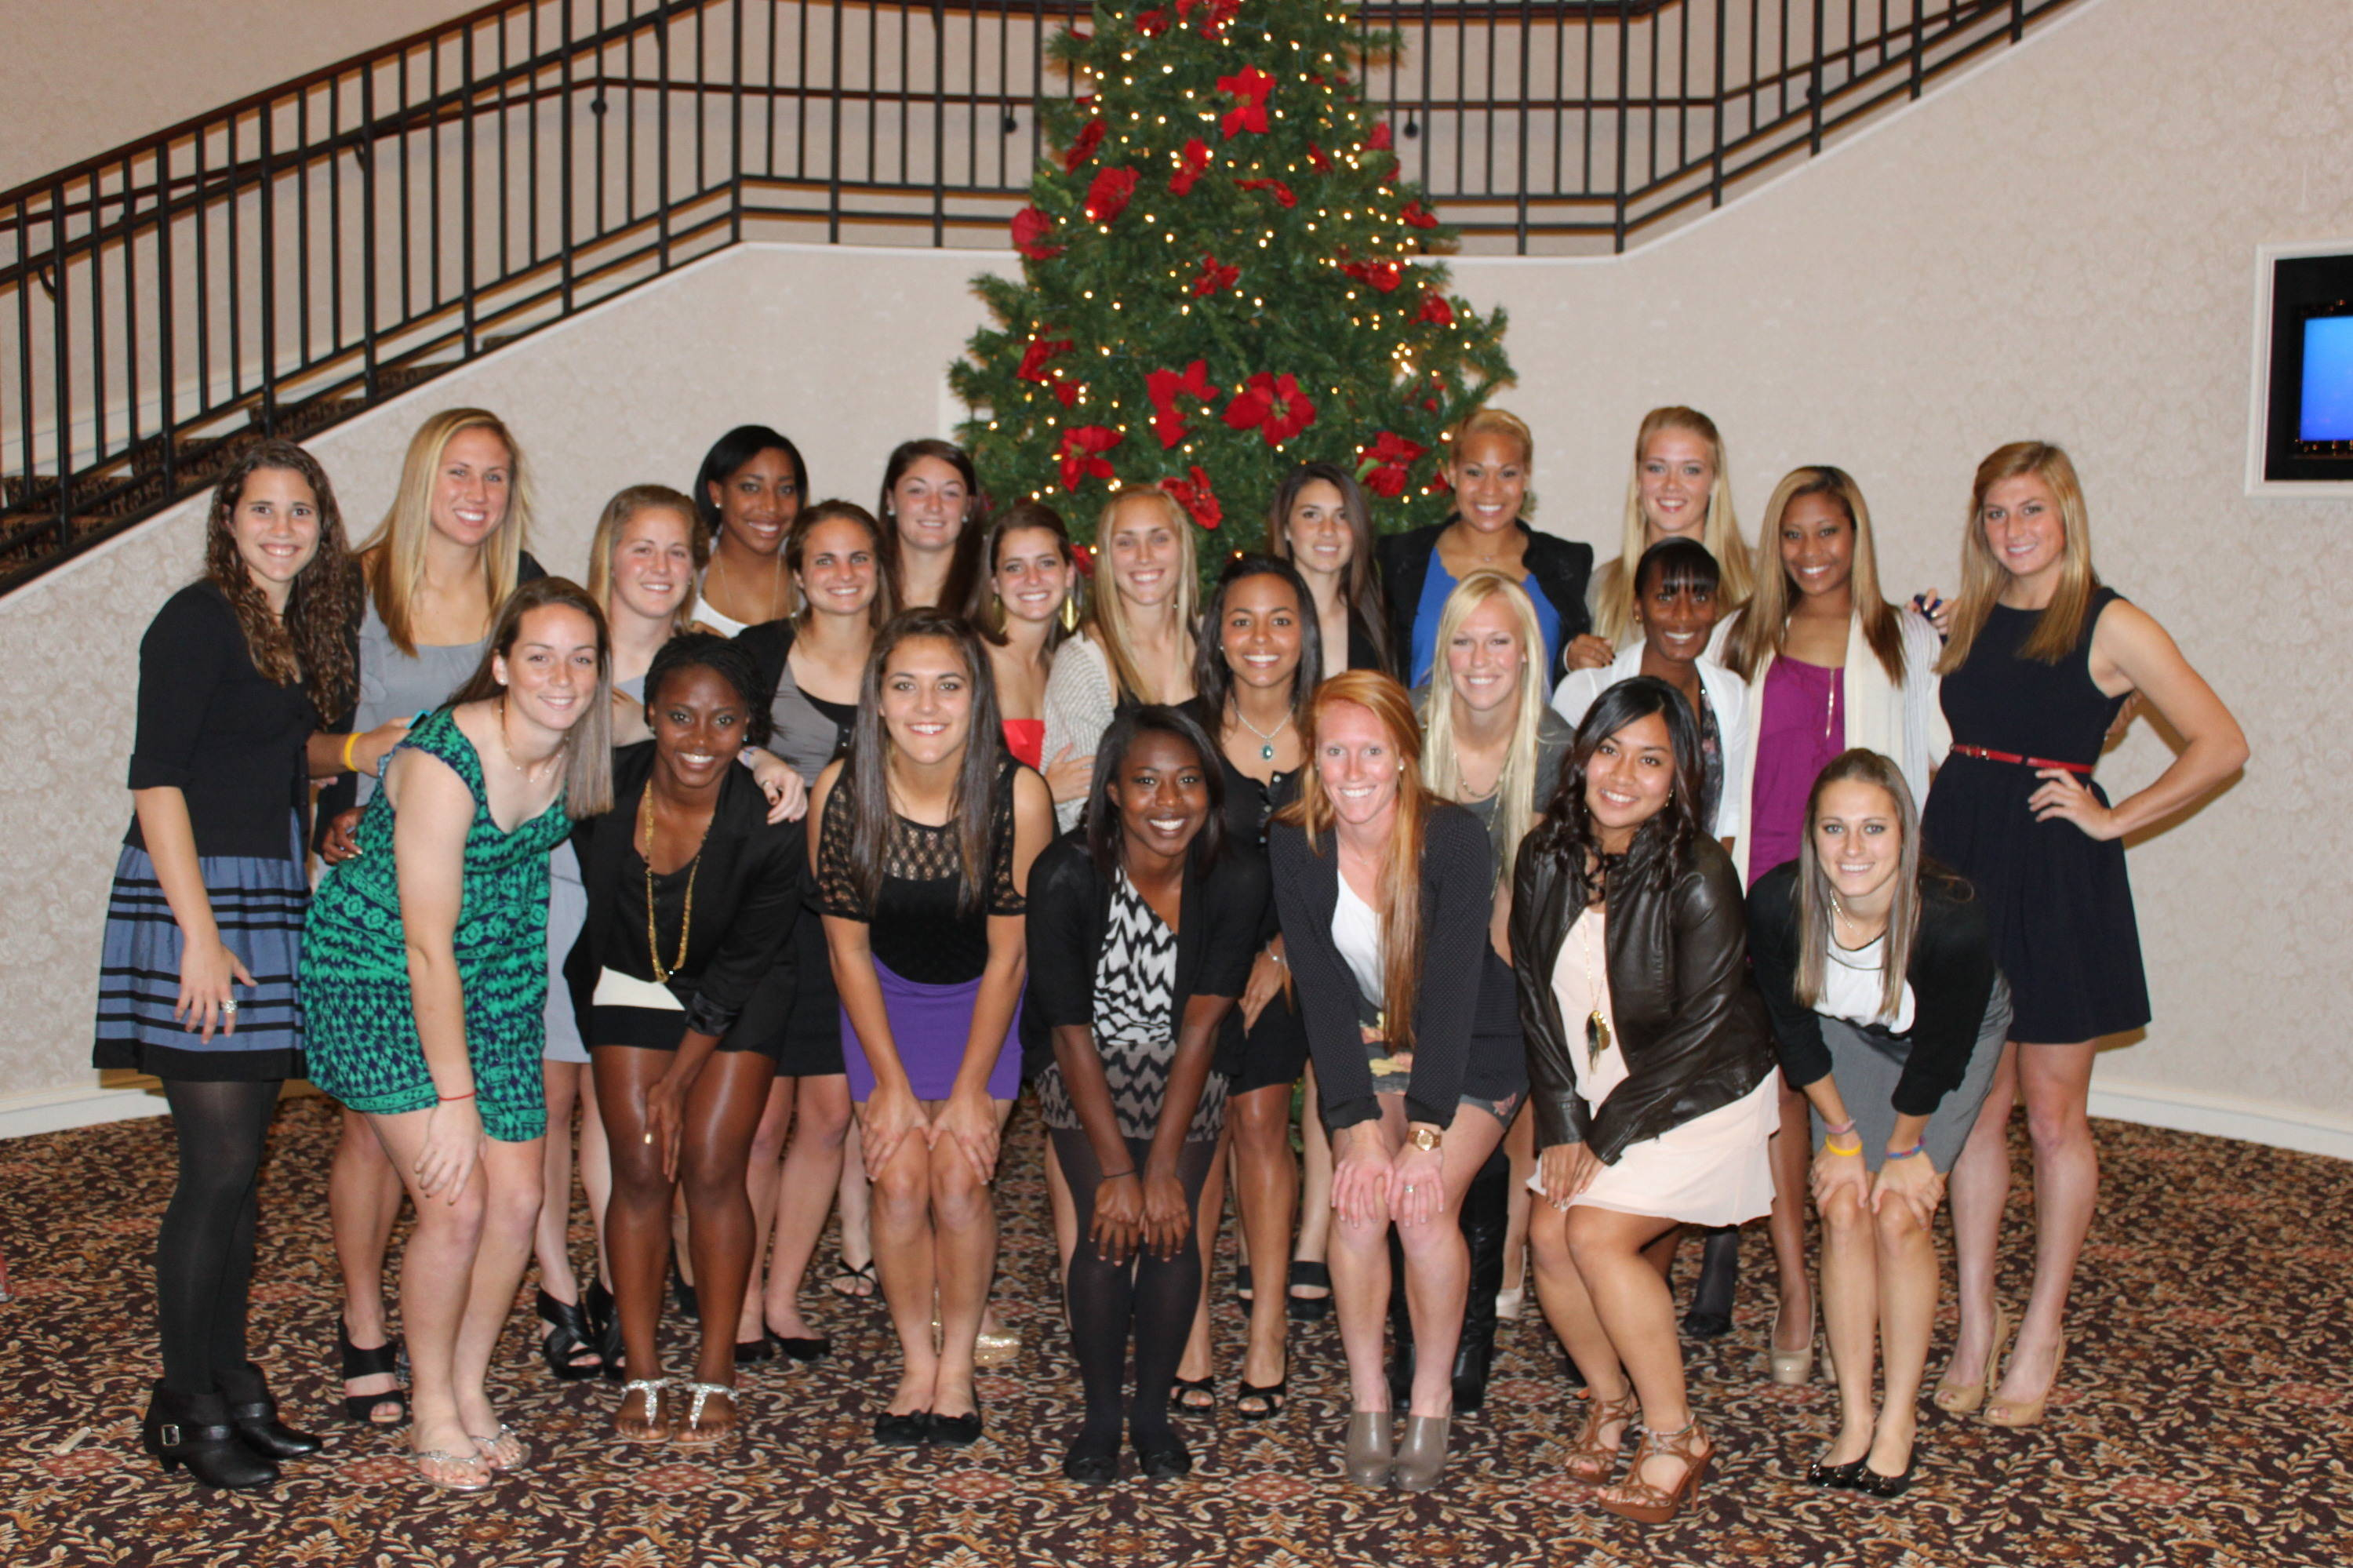 Happy Holidays from the Florida State Soccer Team!